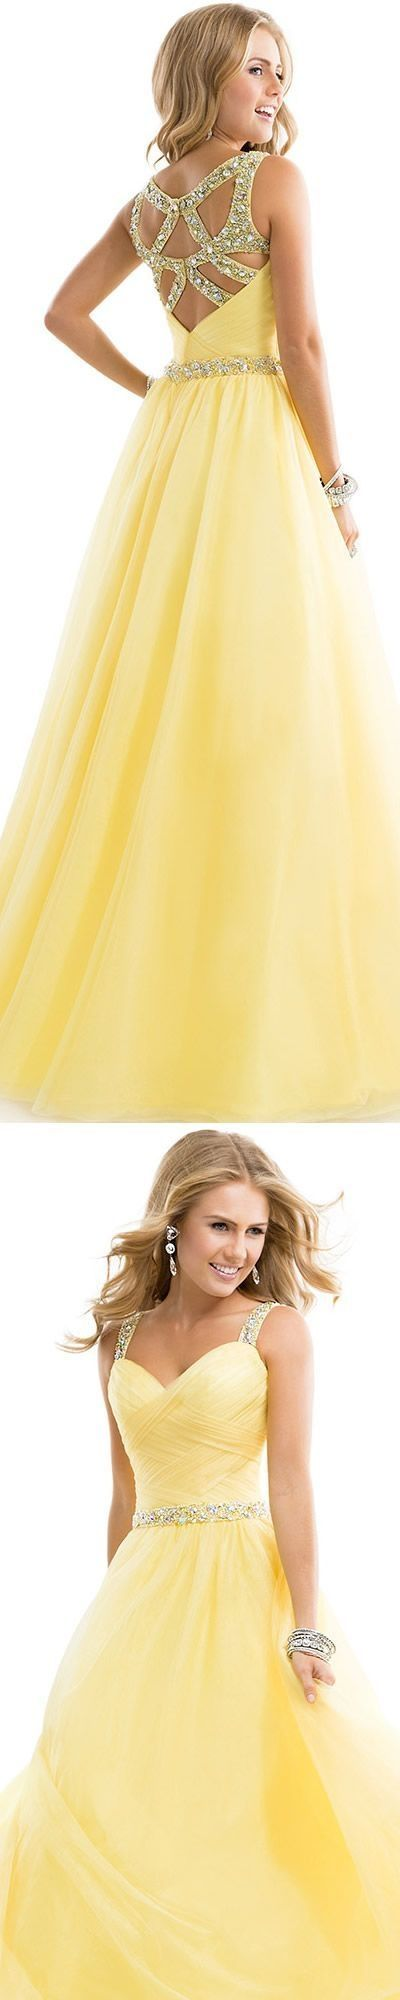 Beading Straps Floor Length Yellow Prom Dress Prom Dress Tulle Ball Gown With Jeweled Straps Open Back prom dress,272 on Storenvy